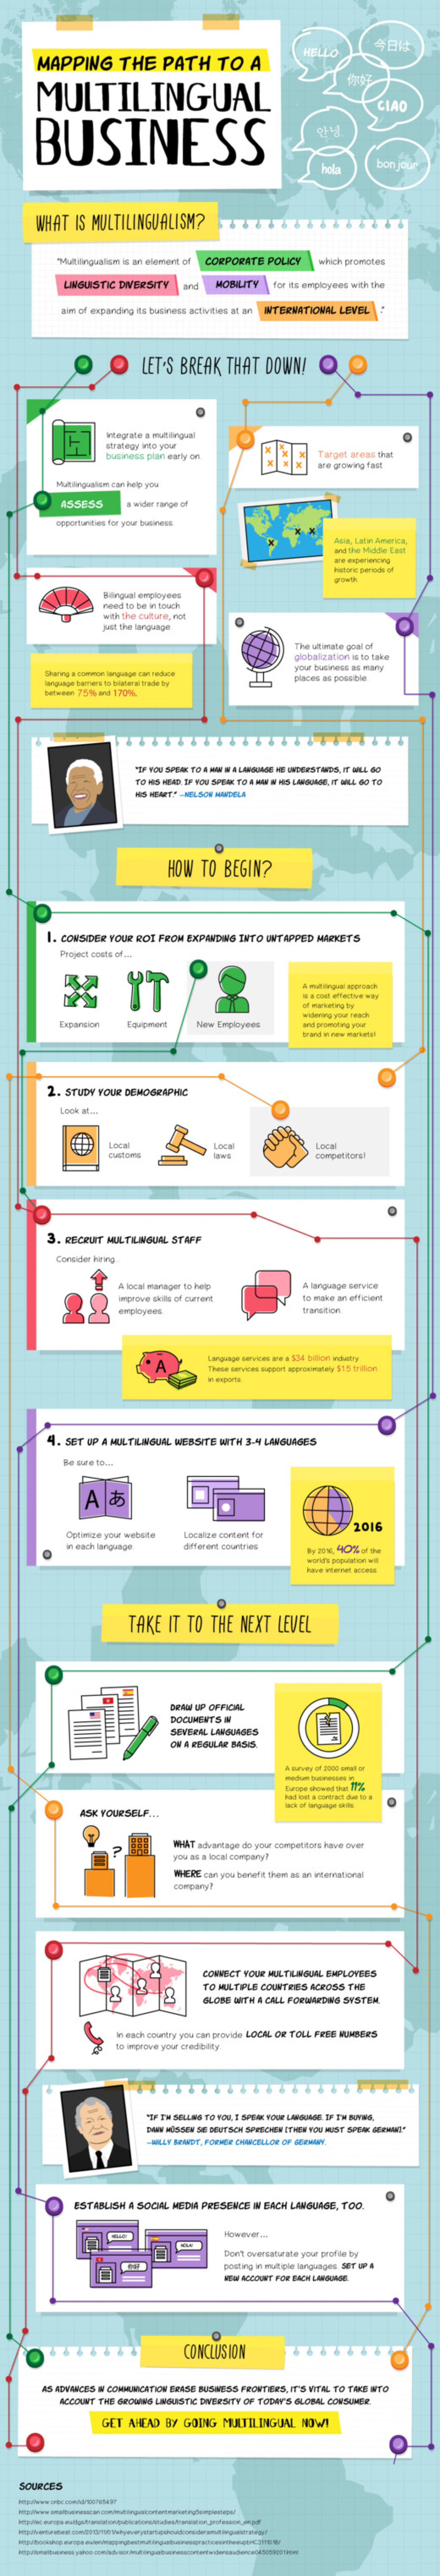 Mapping The Path To A Multilingual Business Infographic